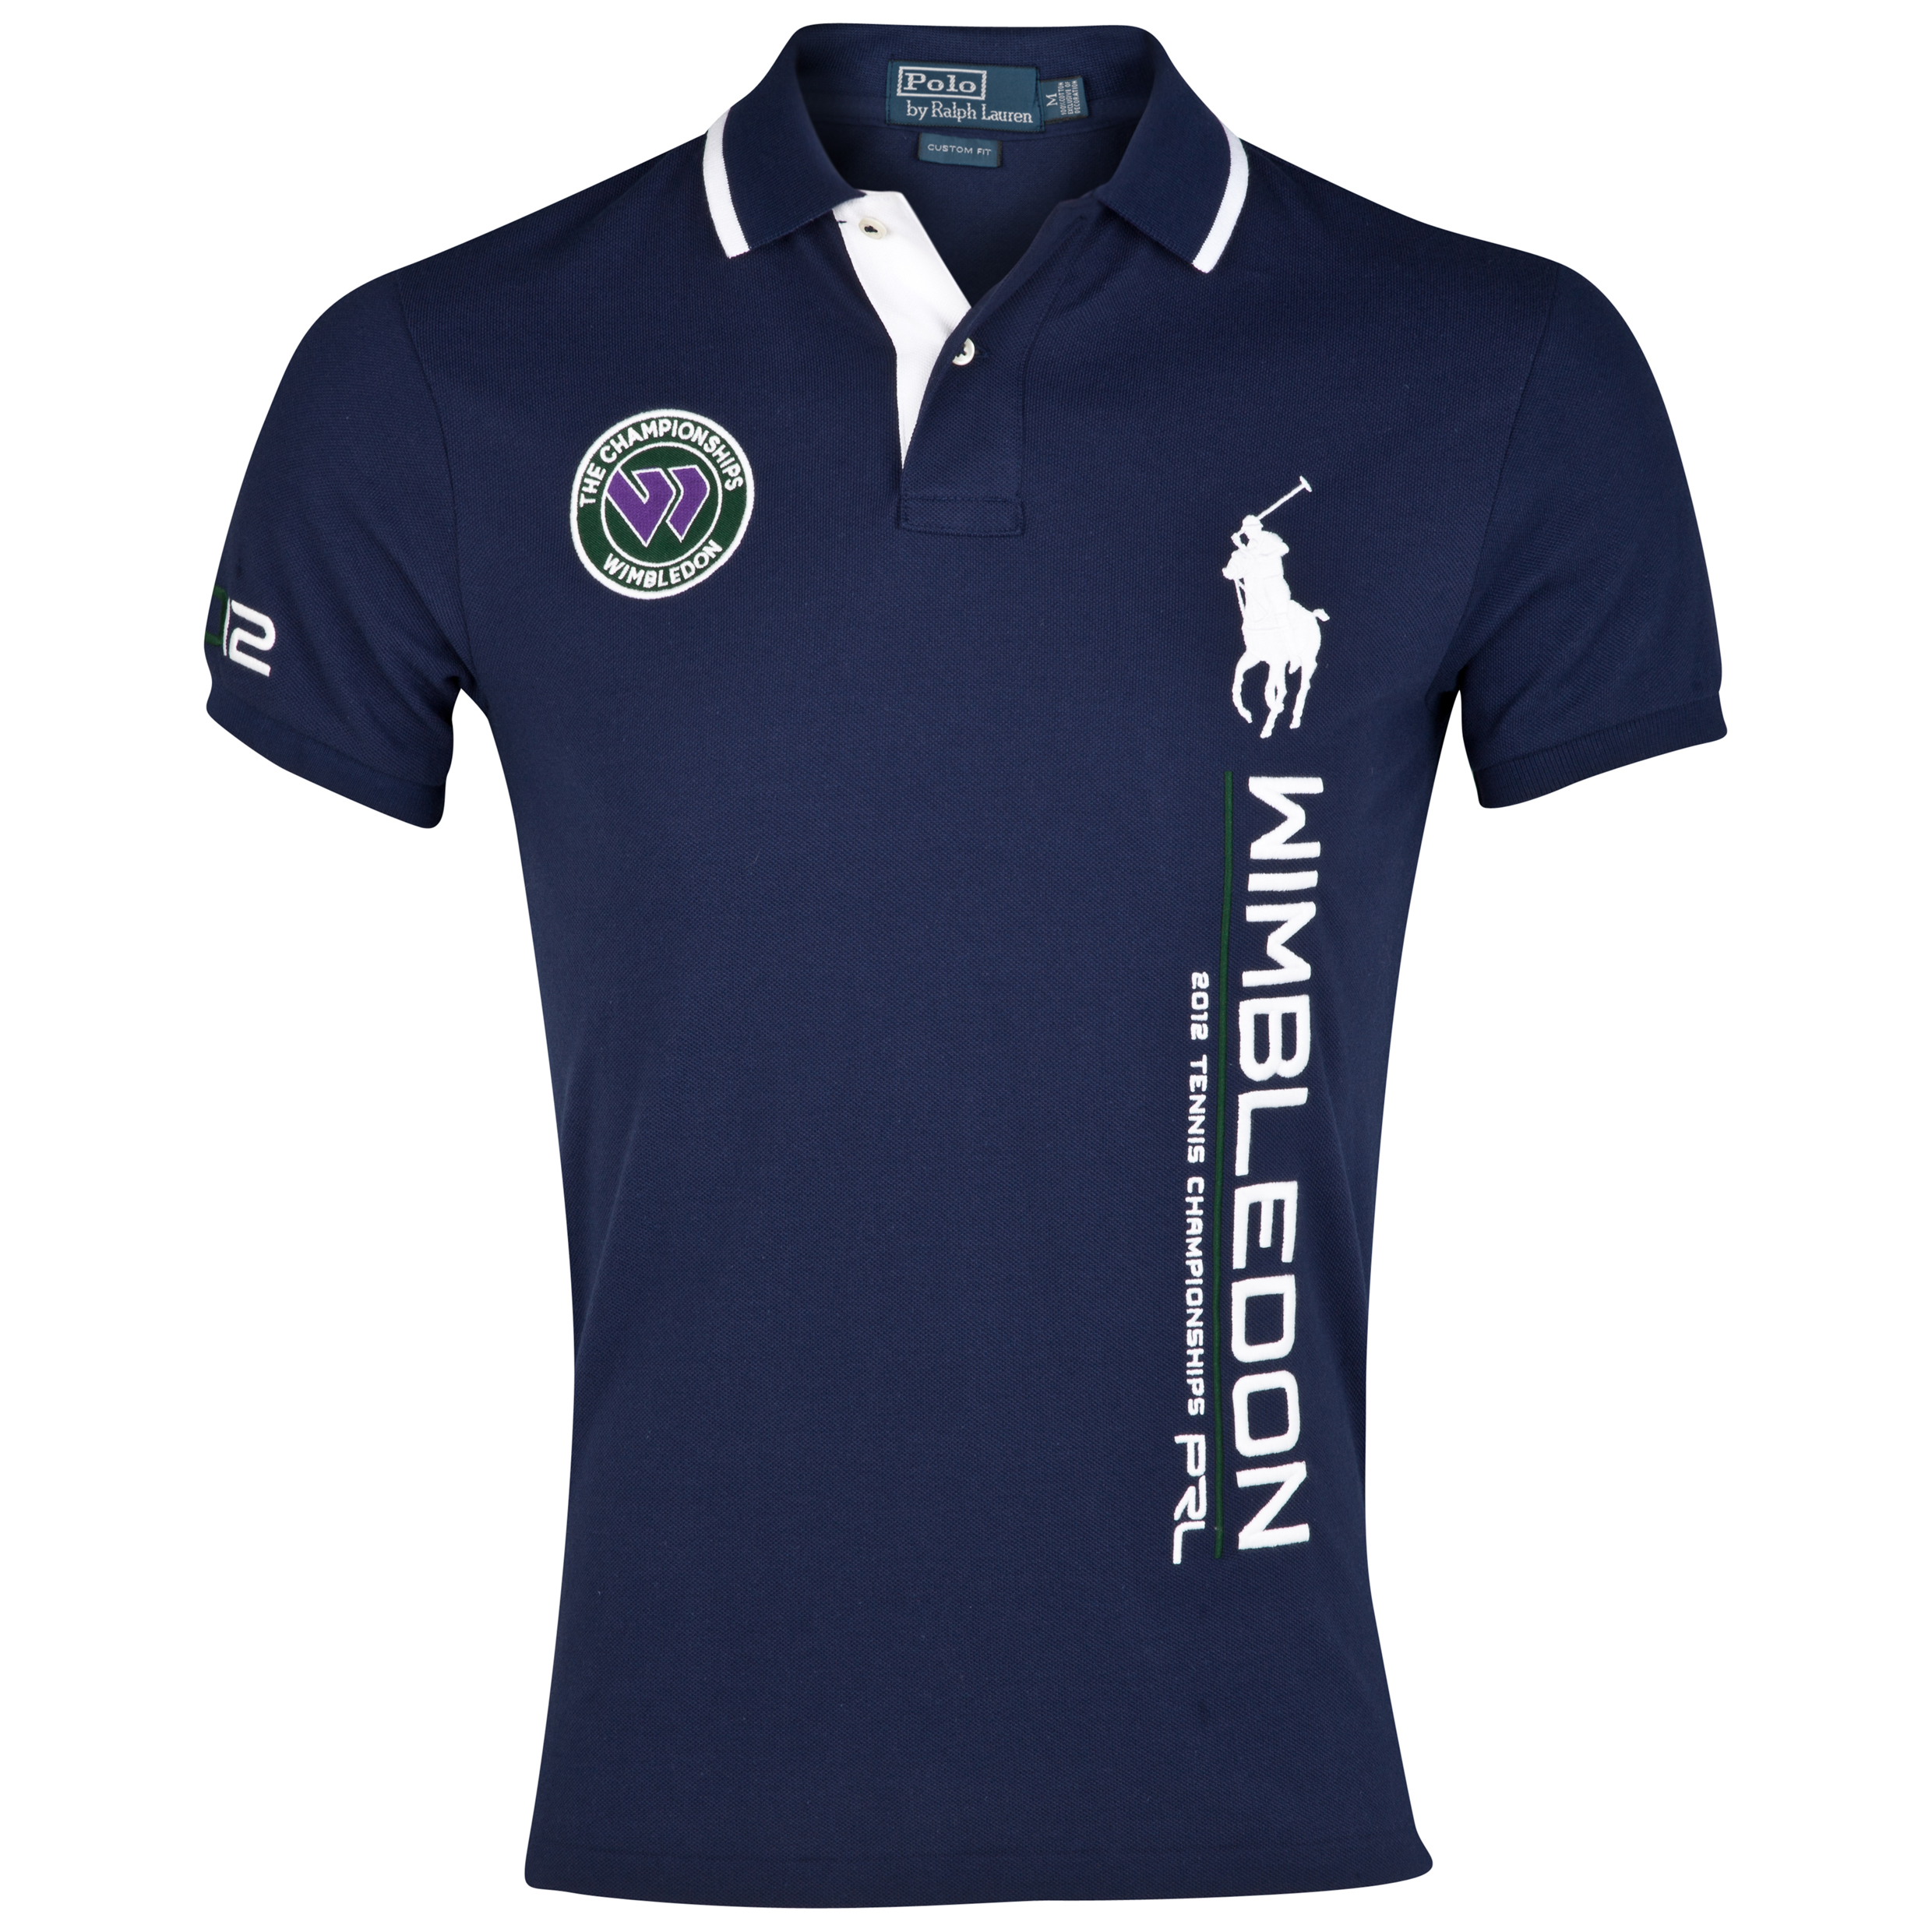 Polo Ralph Lauren Wimbledon Short Sleeve Polo - French Navy